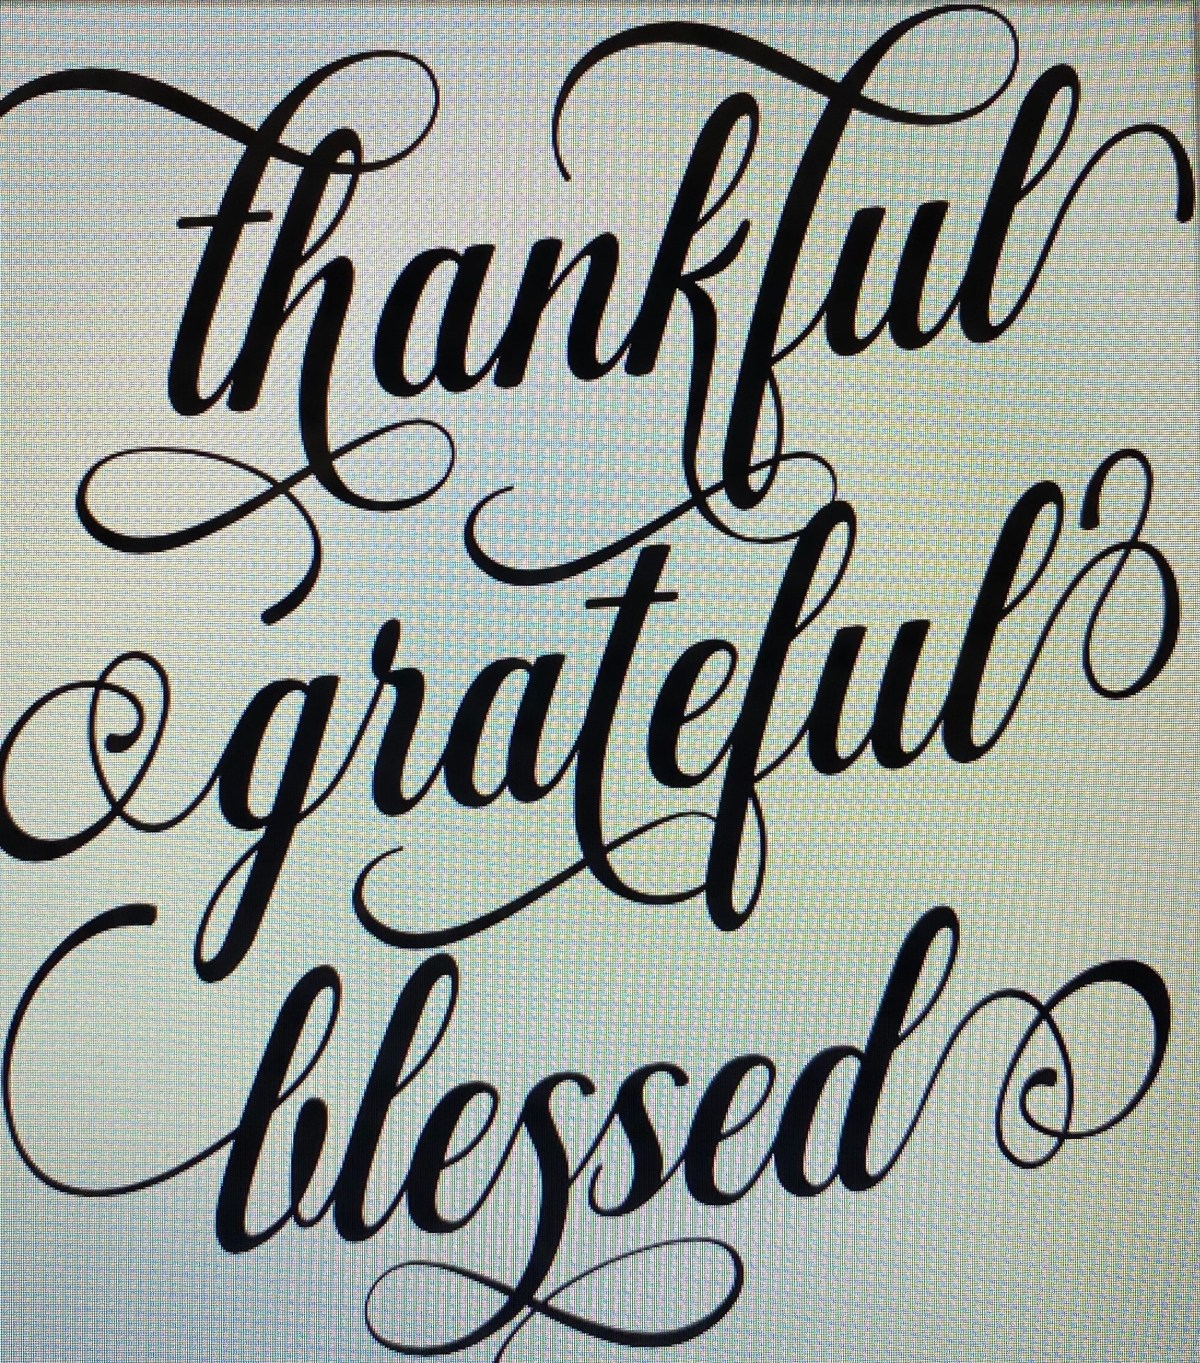 thankful grateful blessed in script